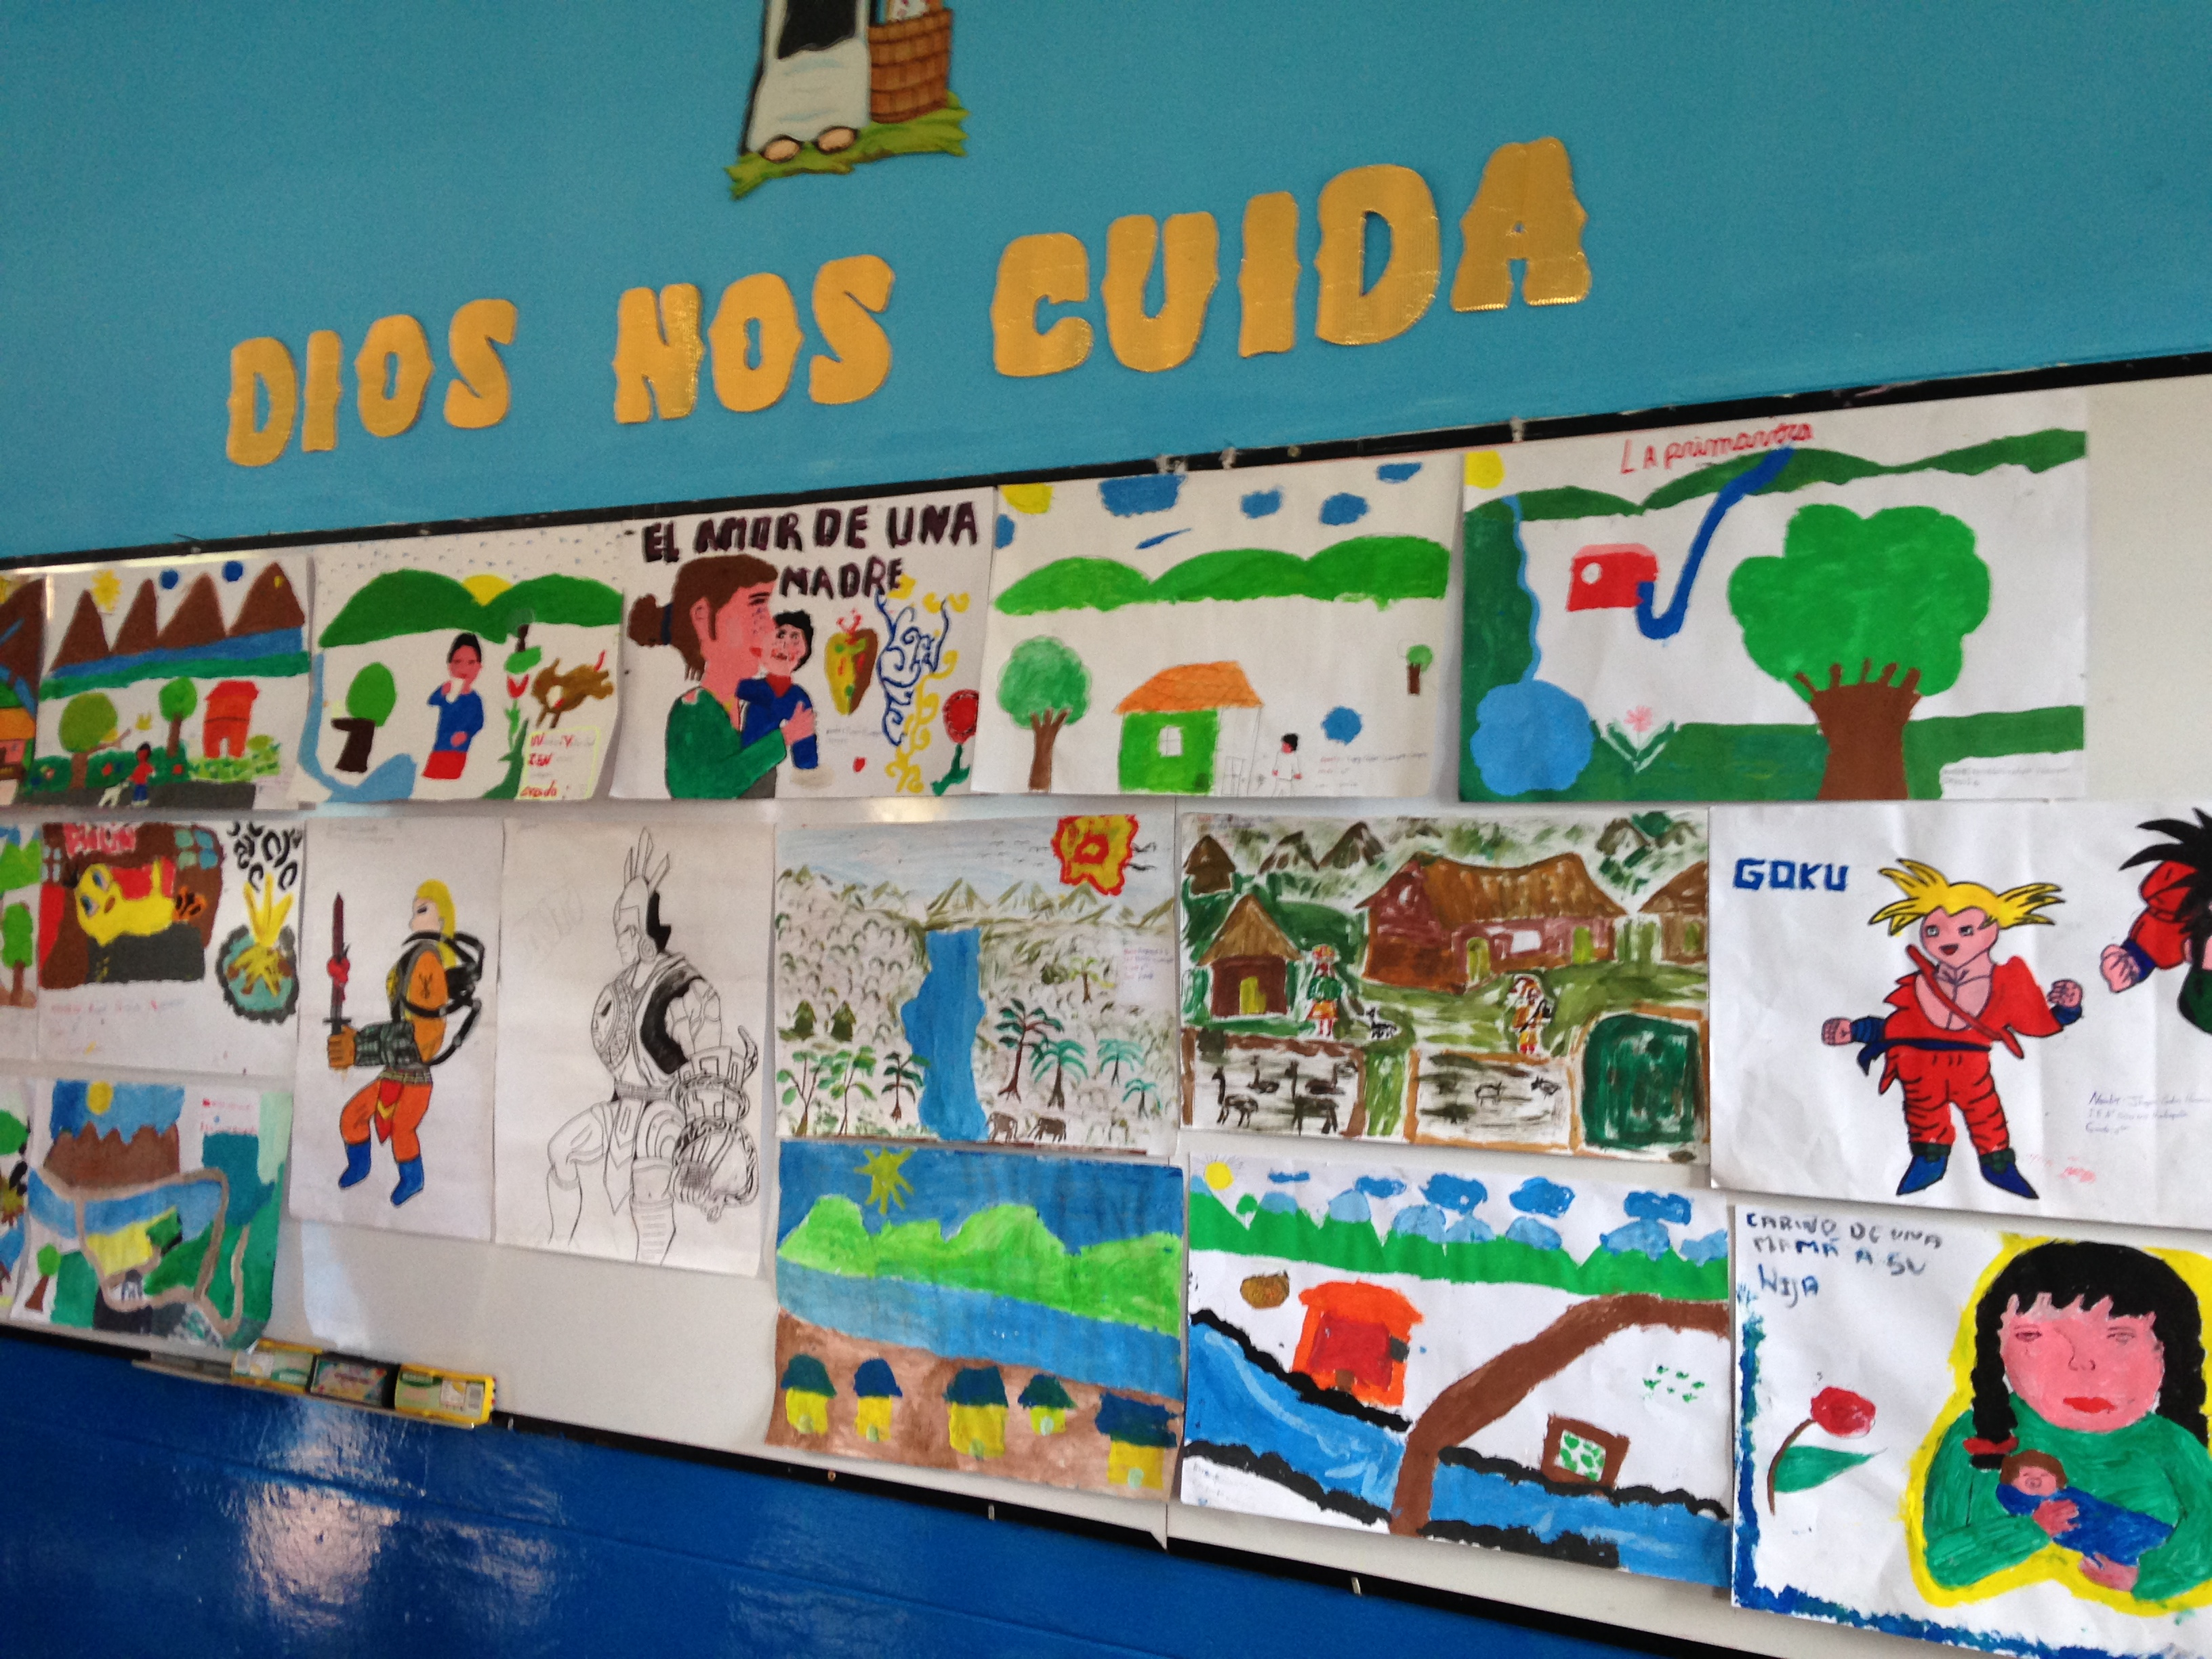 Pictures the children from Huillcapata painted!